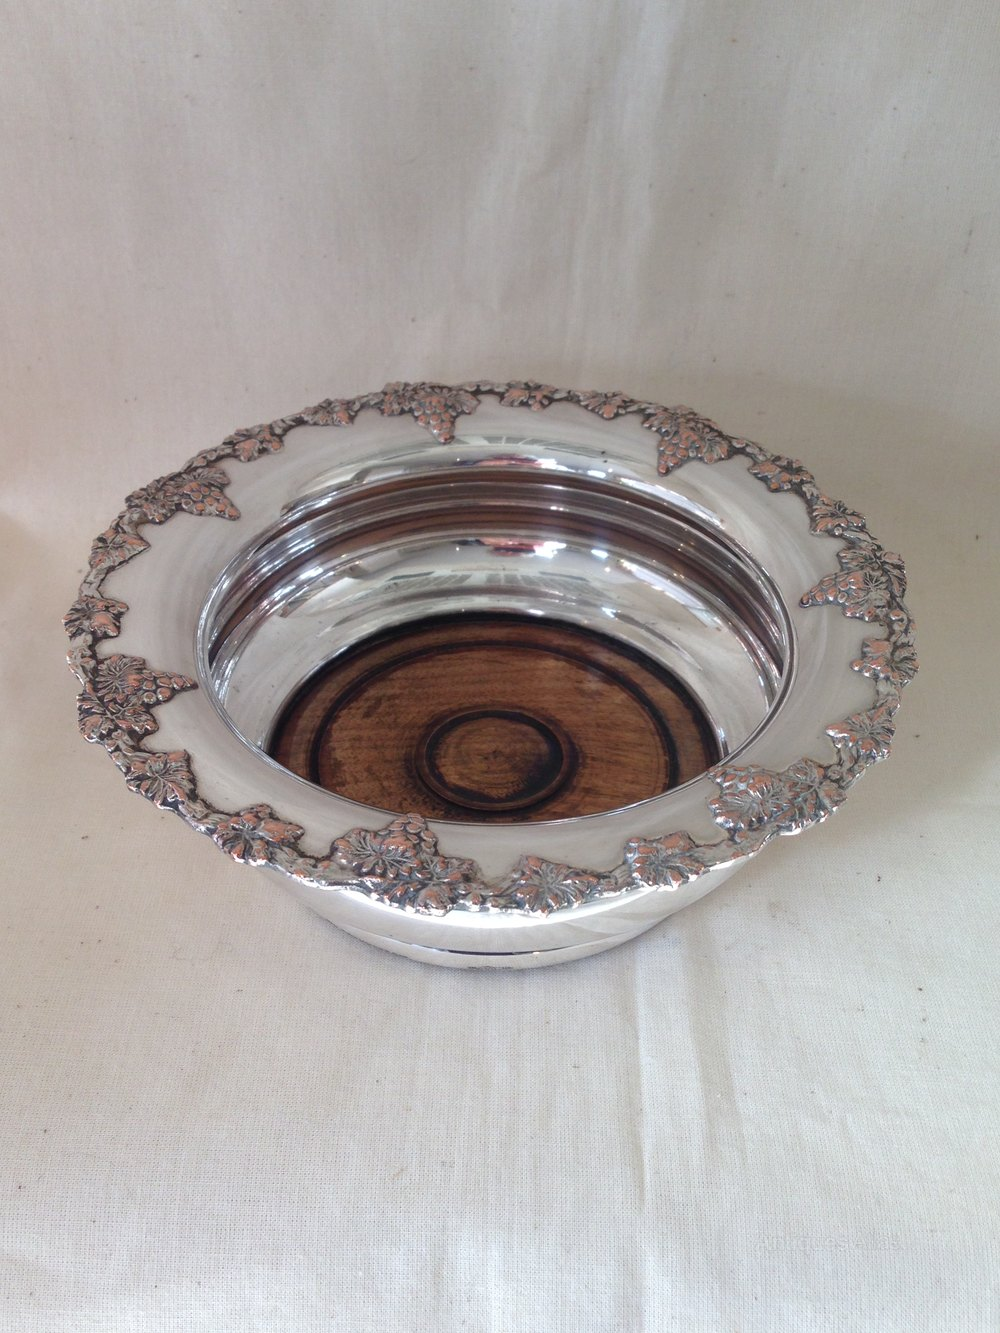 Can I Drink From Antique Silver Plate